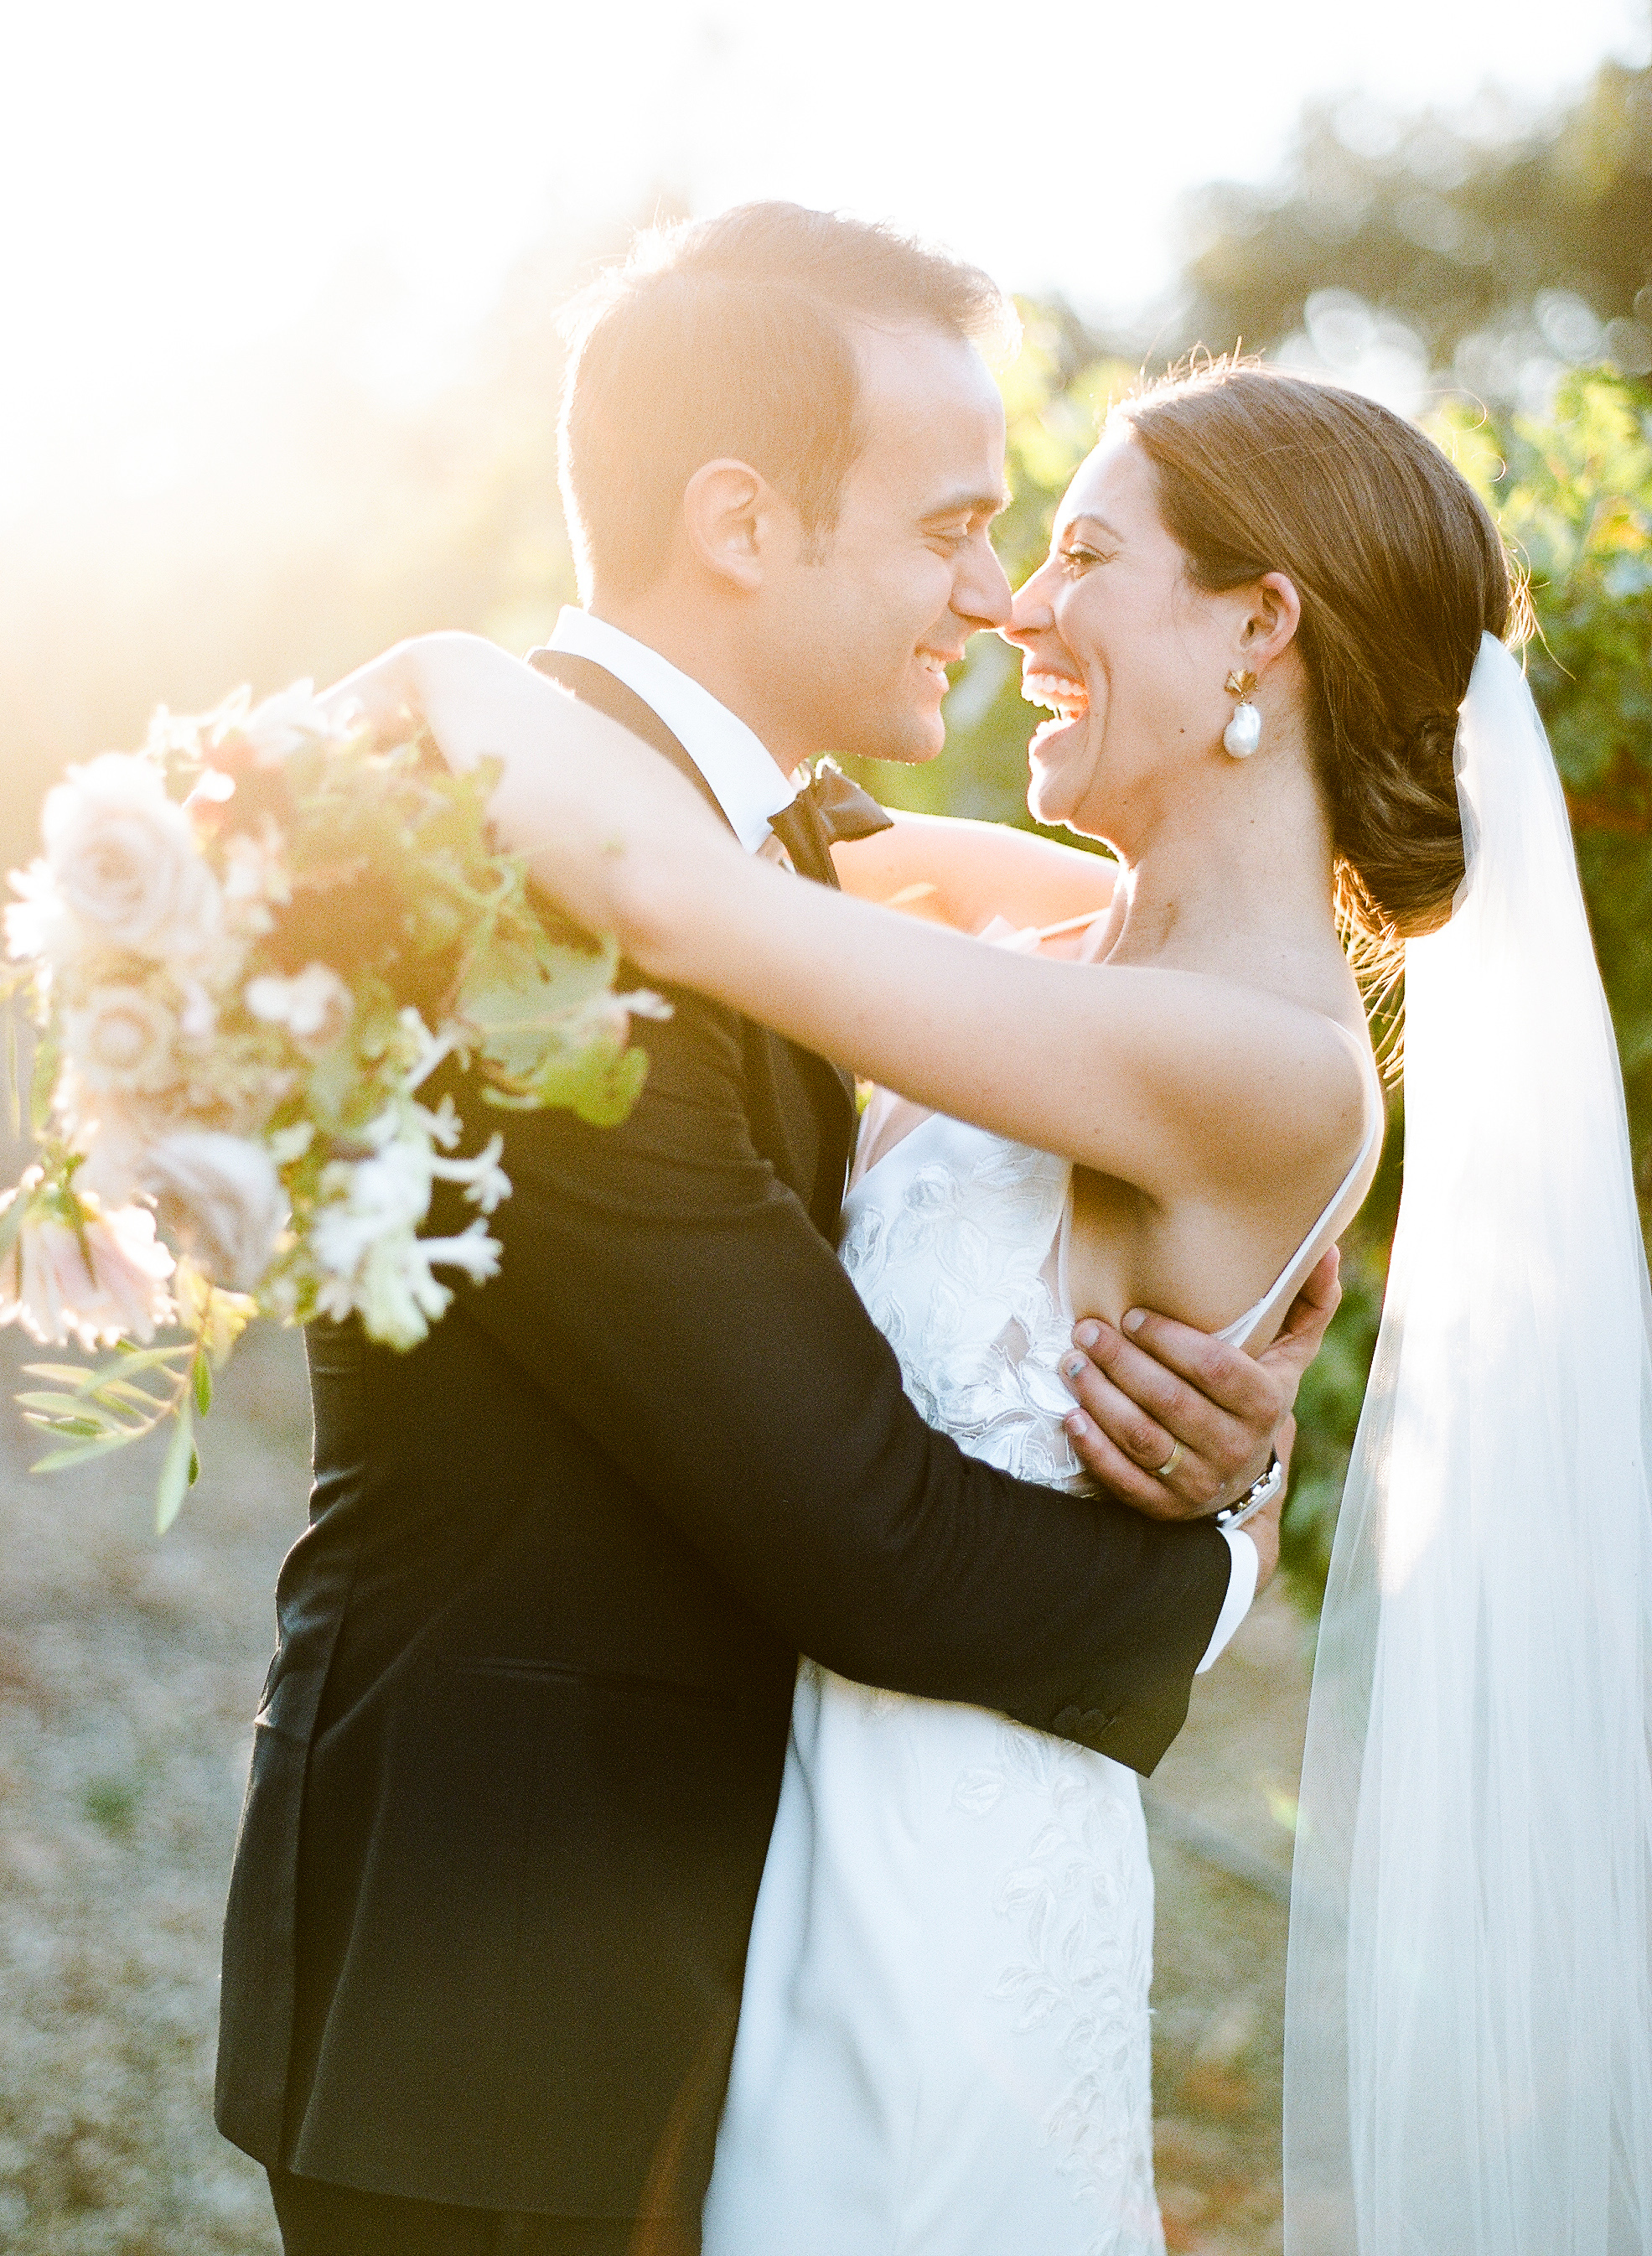 Your Comprehensive Guide to the Most Popular Wedding Photography Styles